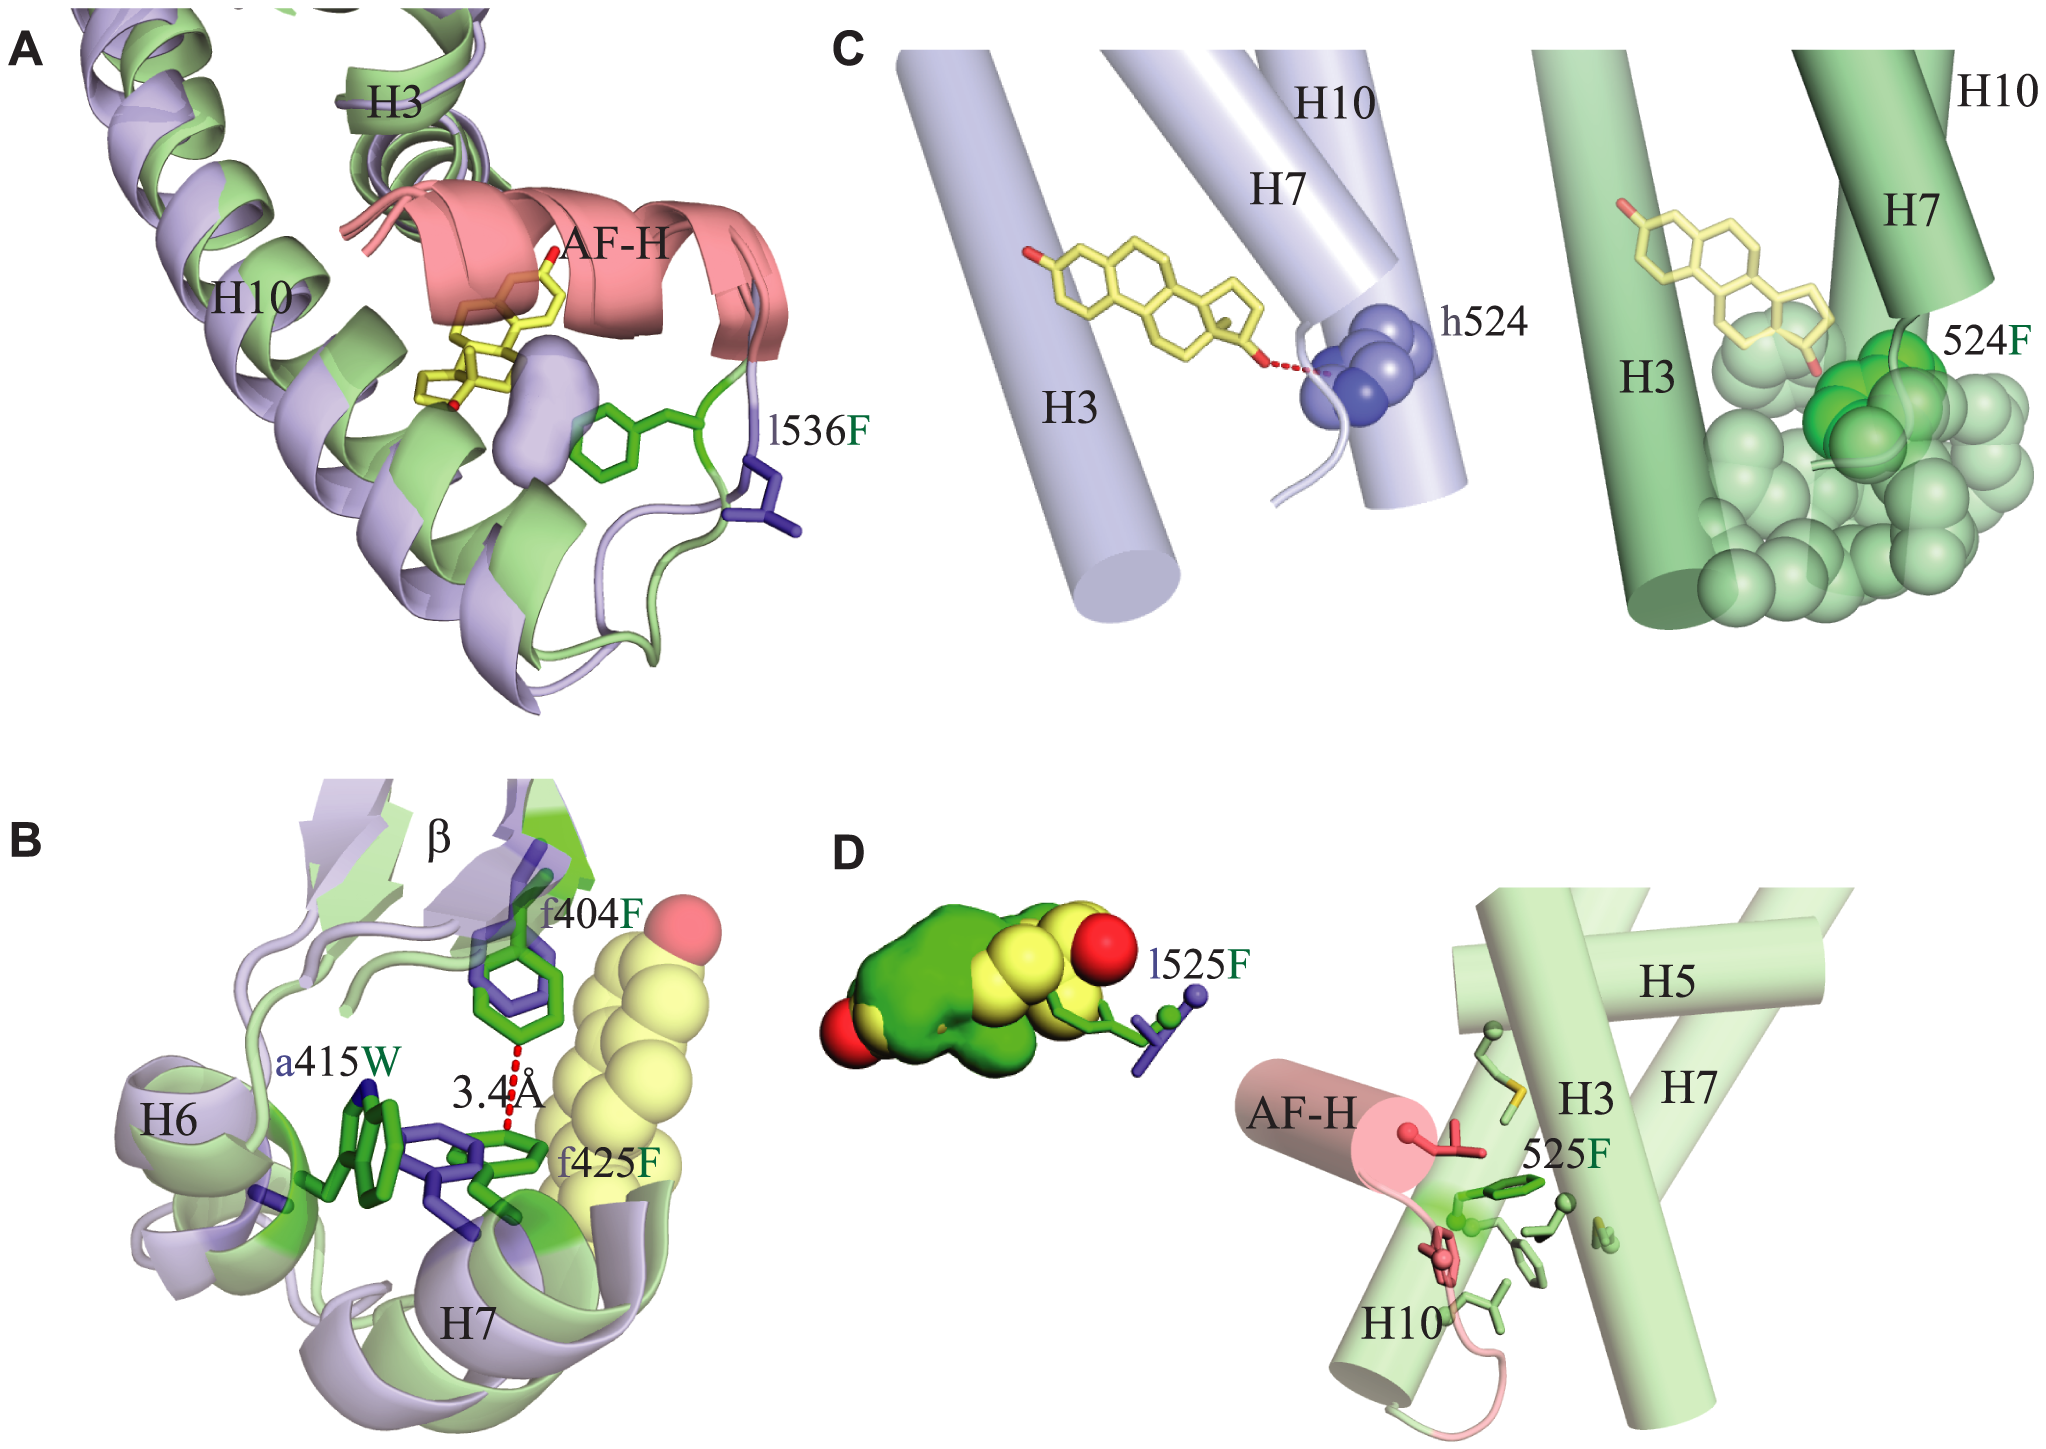 Structural mechanisms by which key mutations contribute to constitutive activity.